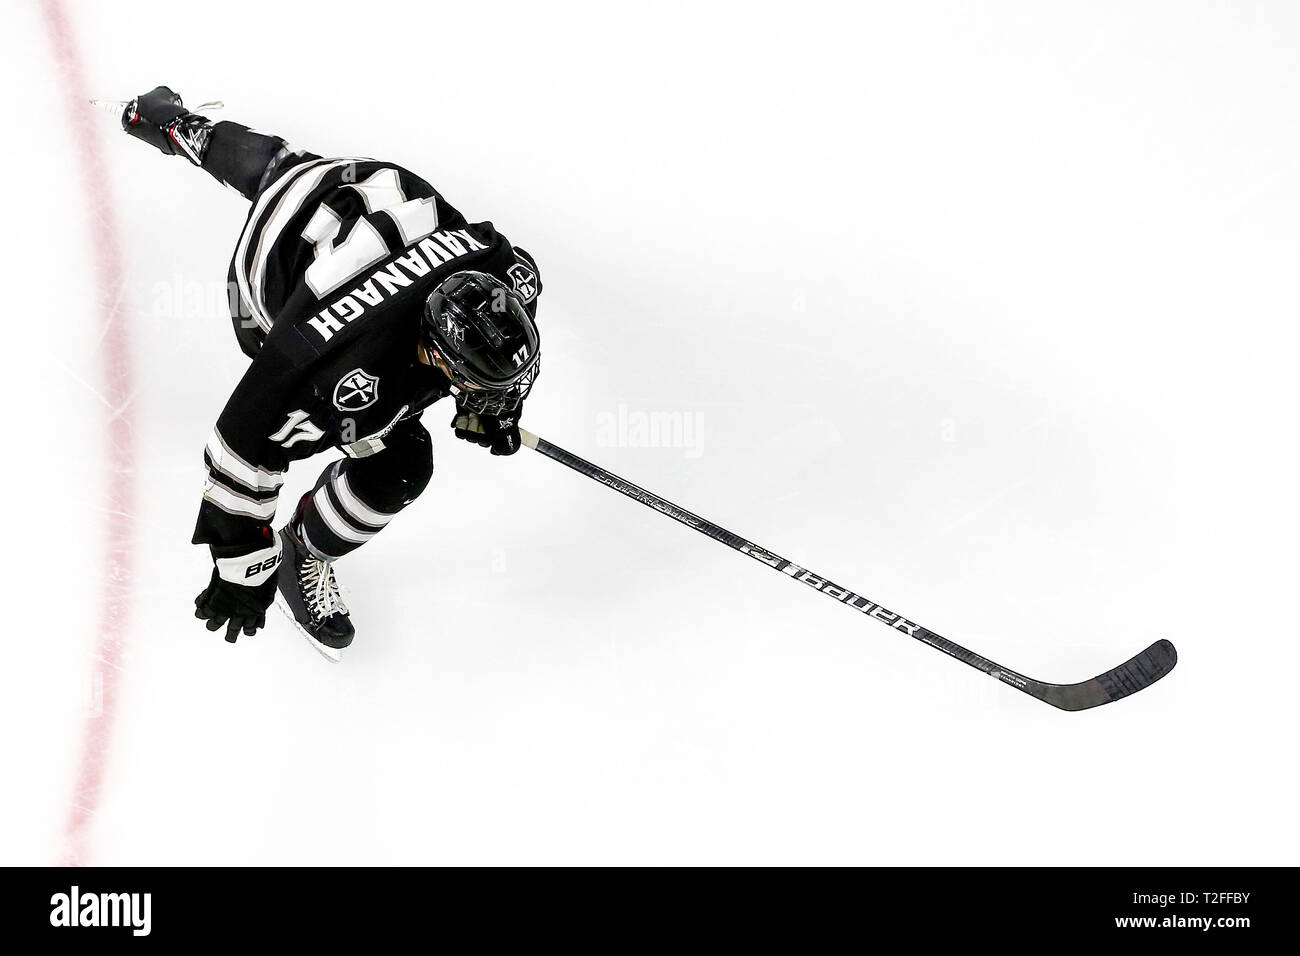 Providence, RI, USA. 30th Mar, 2019. Providence Friars forward Shane Kavanagh (17) skates up ice during the NCAA East Regional hockey game between Minnesota State Mavericks and the Providence College Friars at The Dunkin Donuts Center in Providence, RI. Alan Sullivan/CSM/Alamy Live News - Stock Image